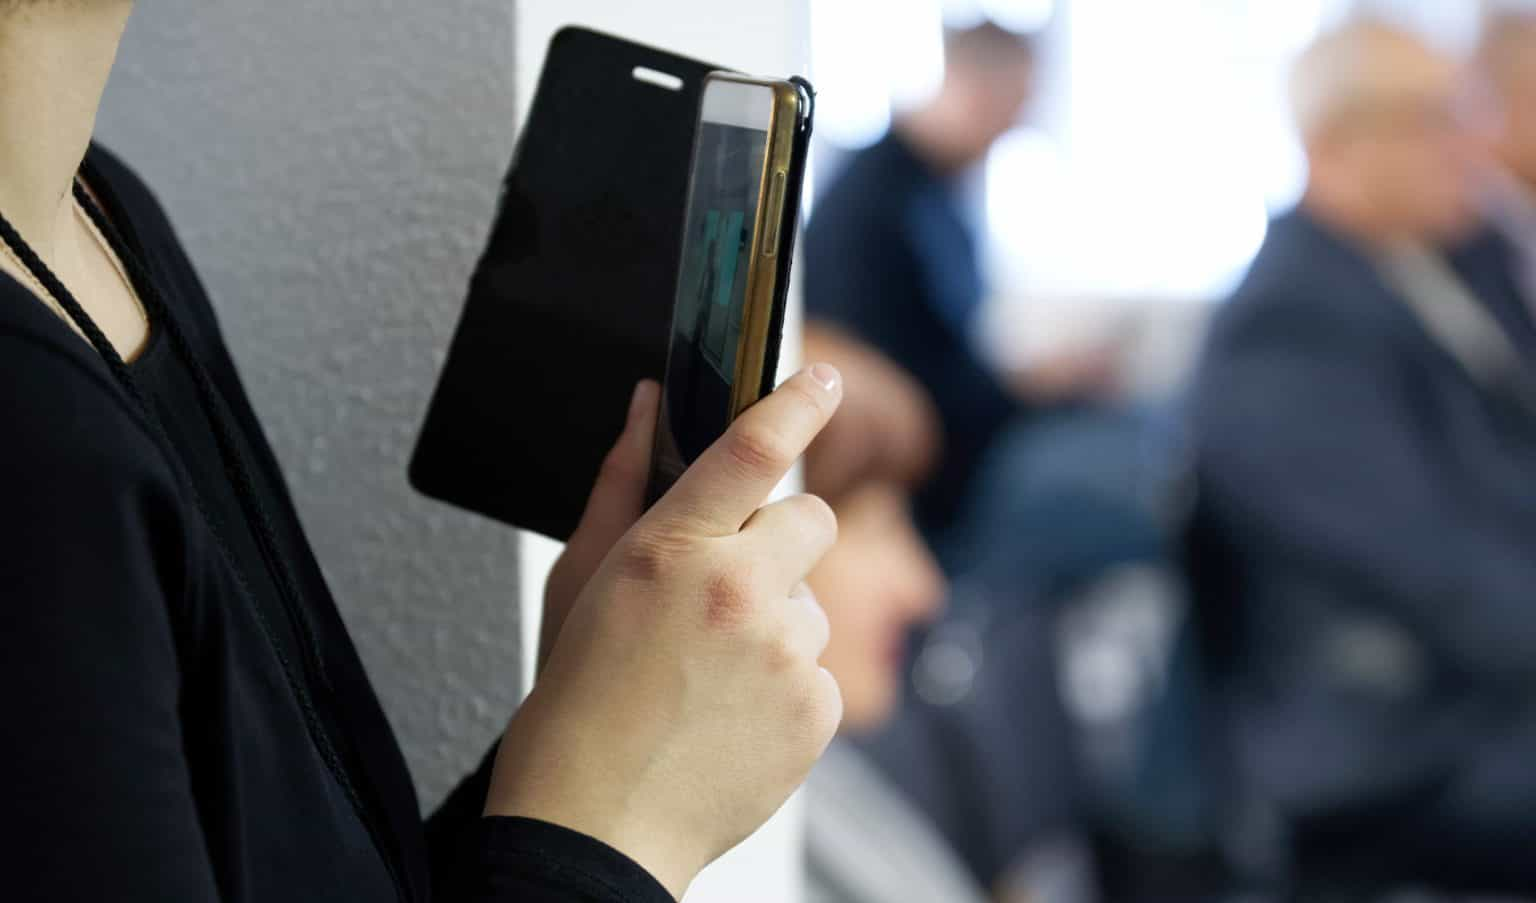 secretly recording a partner may not be admissible evidence